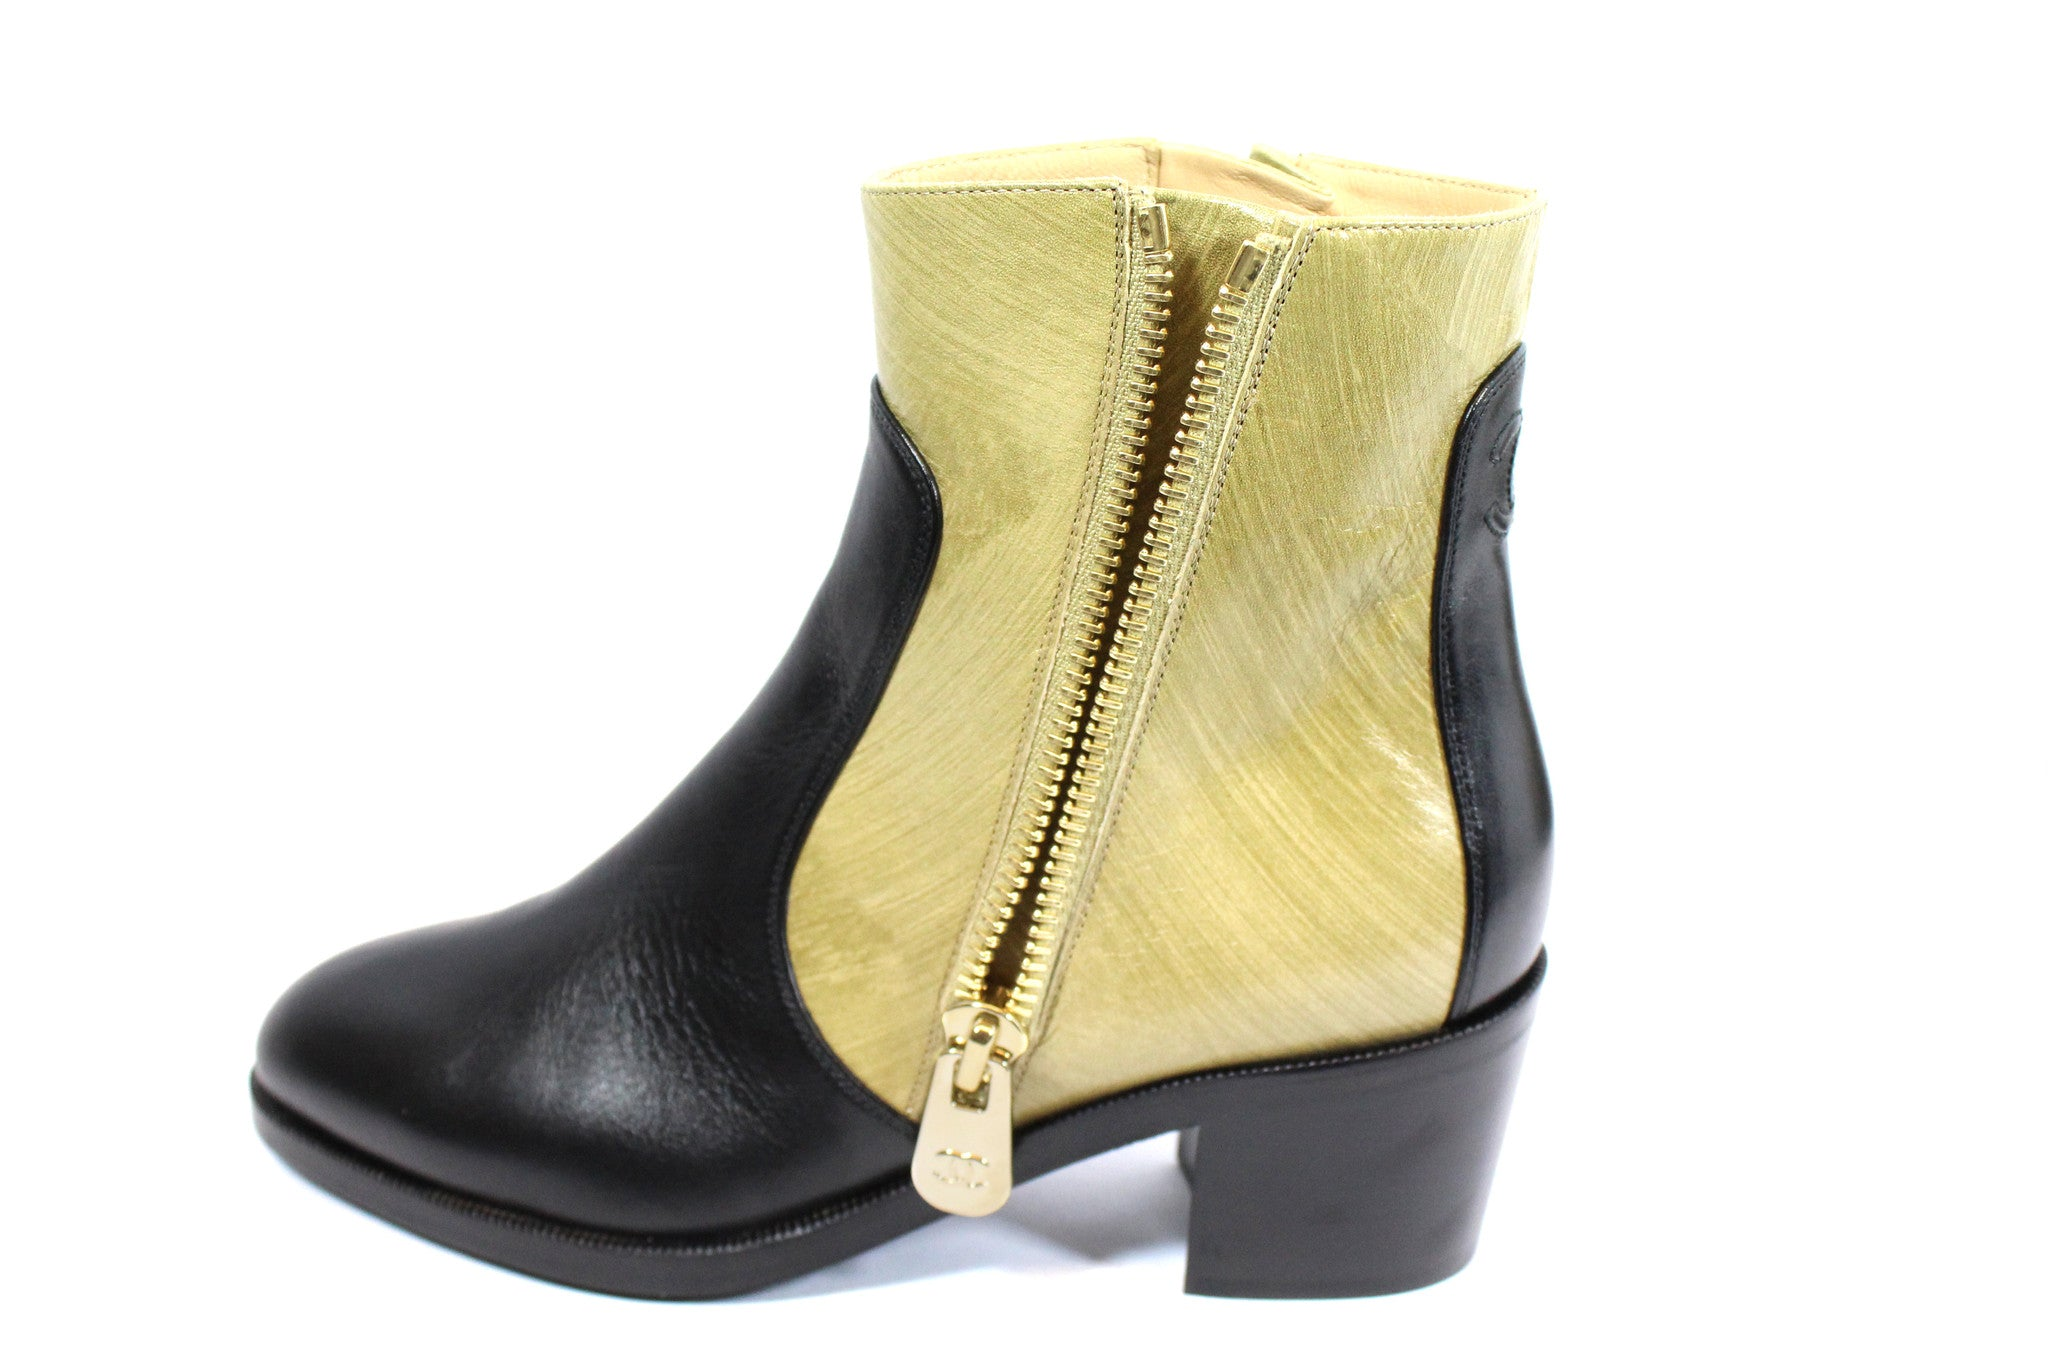 Chanel Two-tone Short Calfskin Boots (Size 38) - Encore Consignment - 6